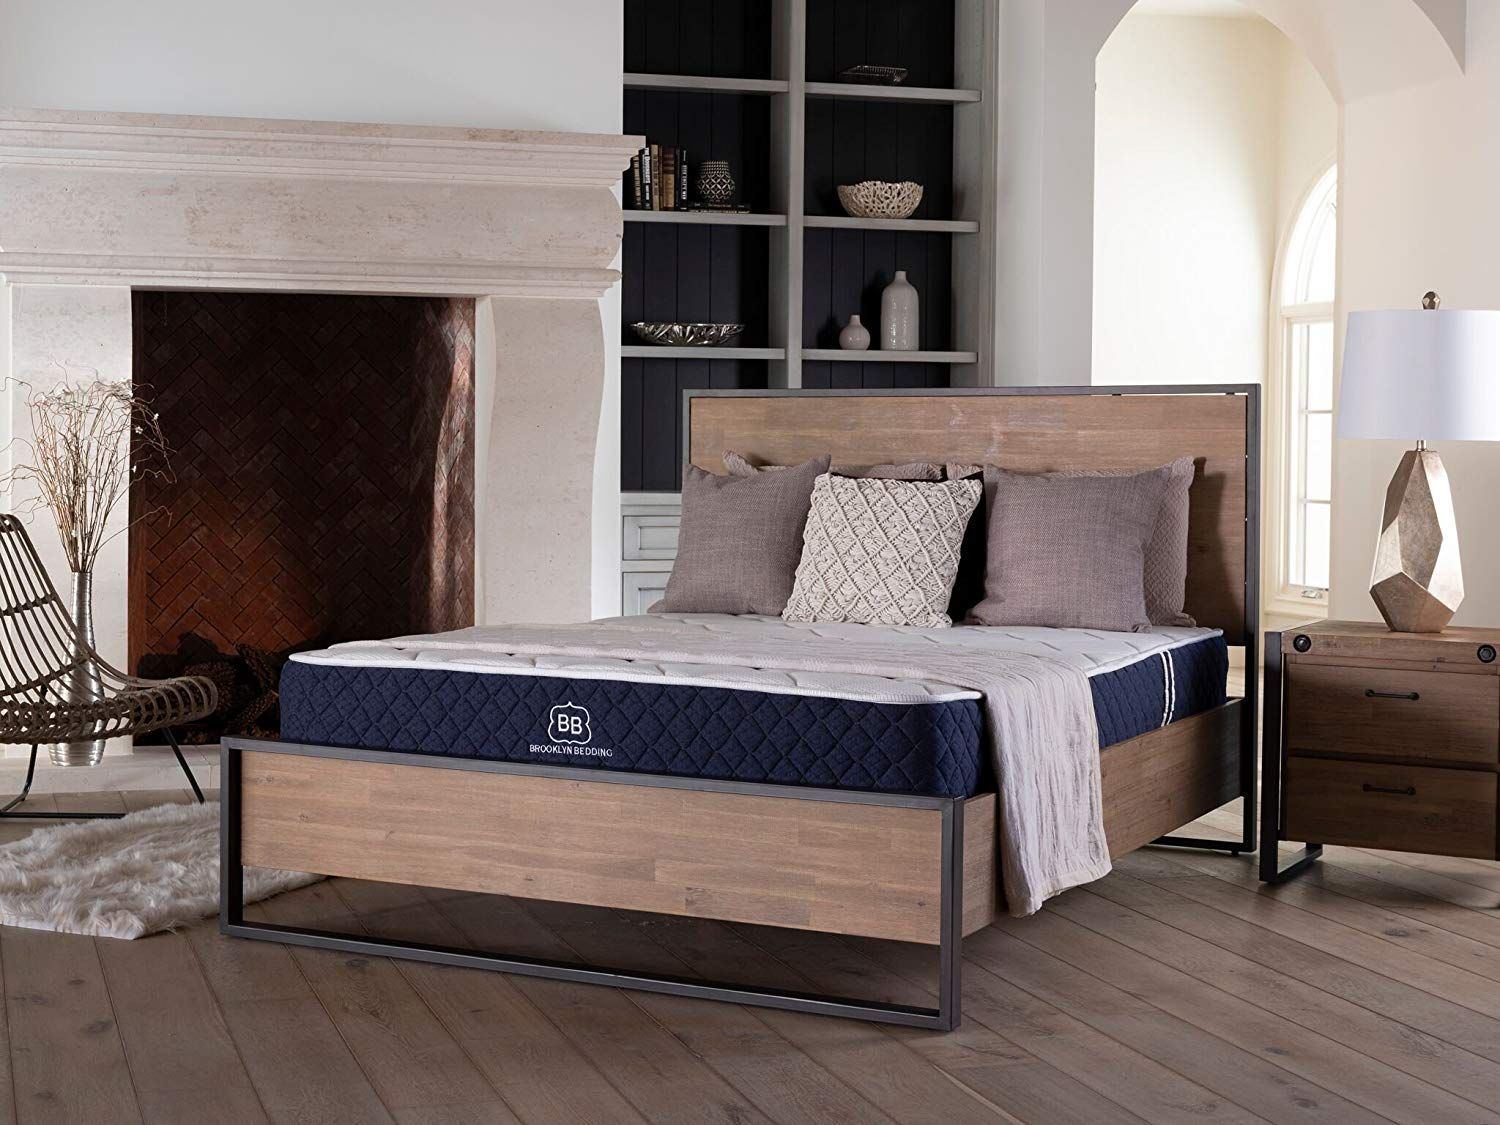 The Brooklyn Signature Hybrid Mattress Consists Of 6 Individually Pocketed Ascension Coils With 2 Of A Transitional Energex Foam For Best Mattress Mattress Lull Mattress